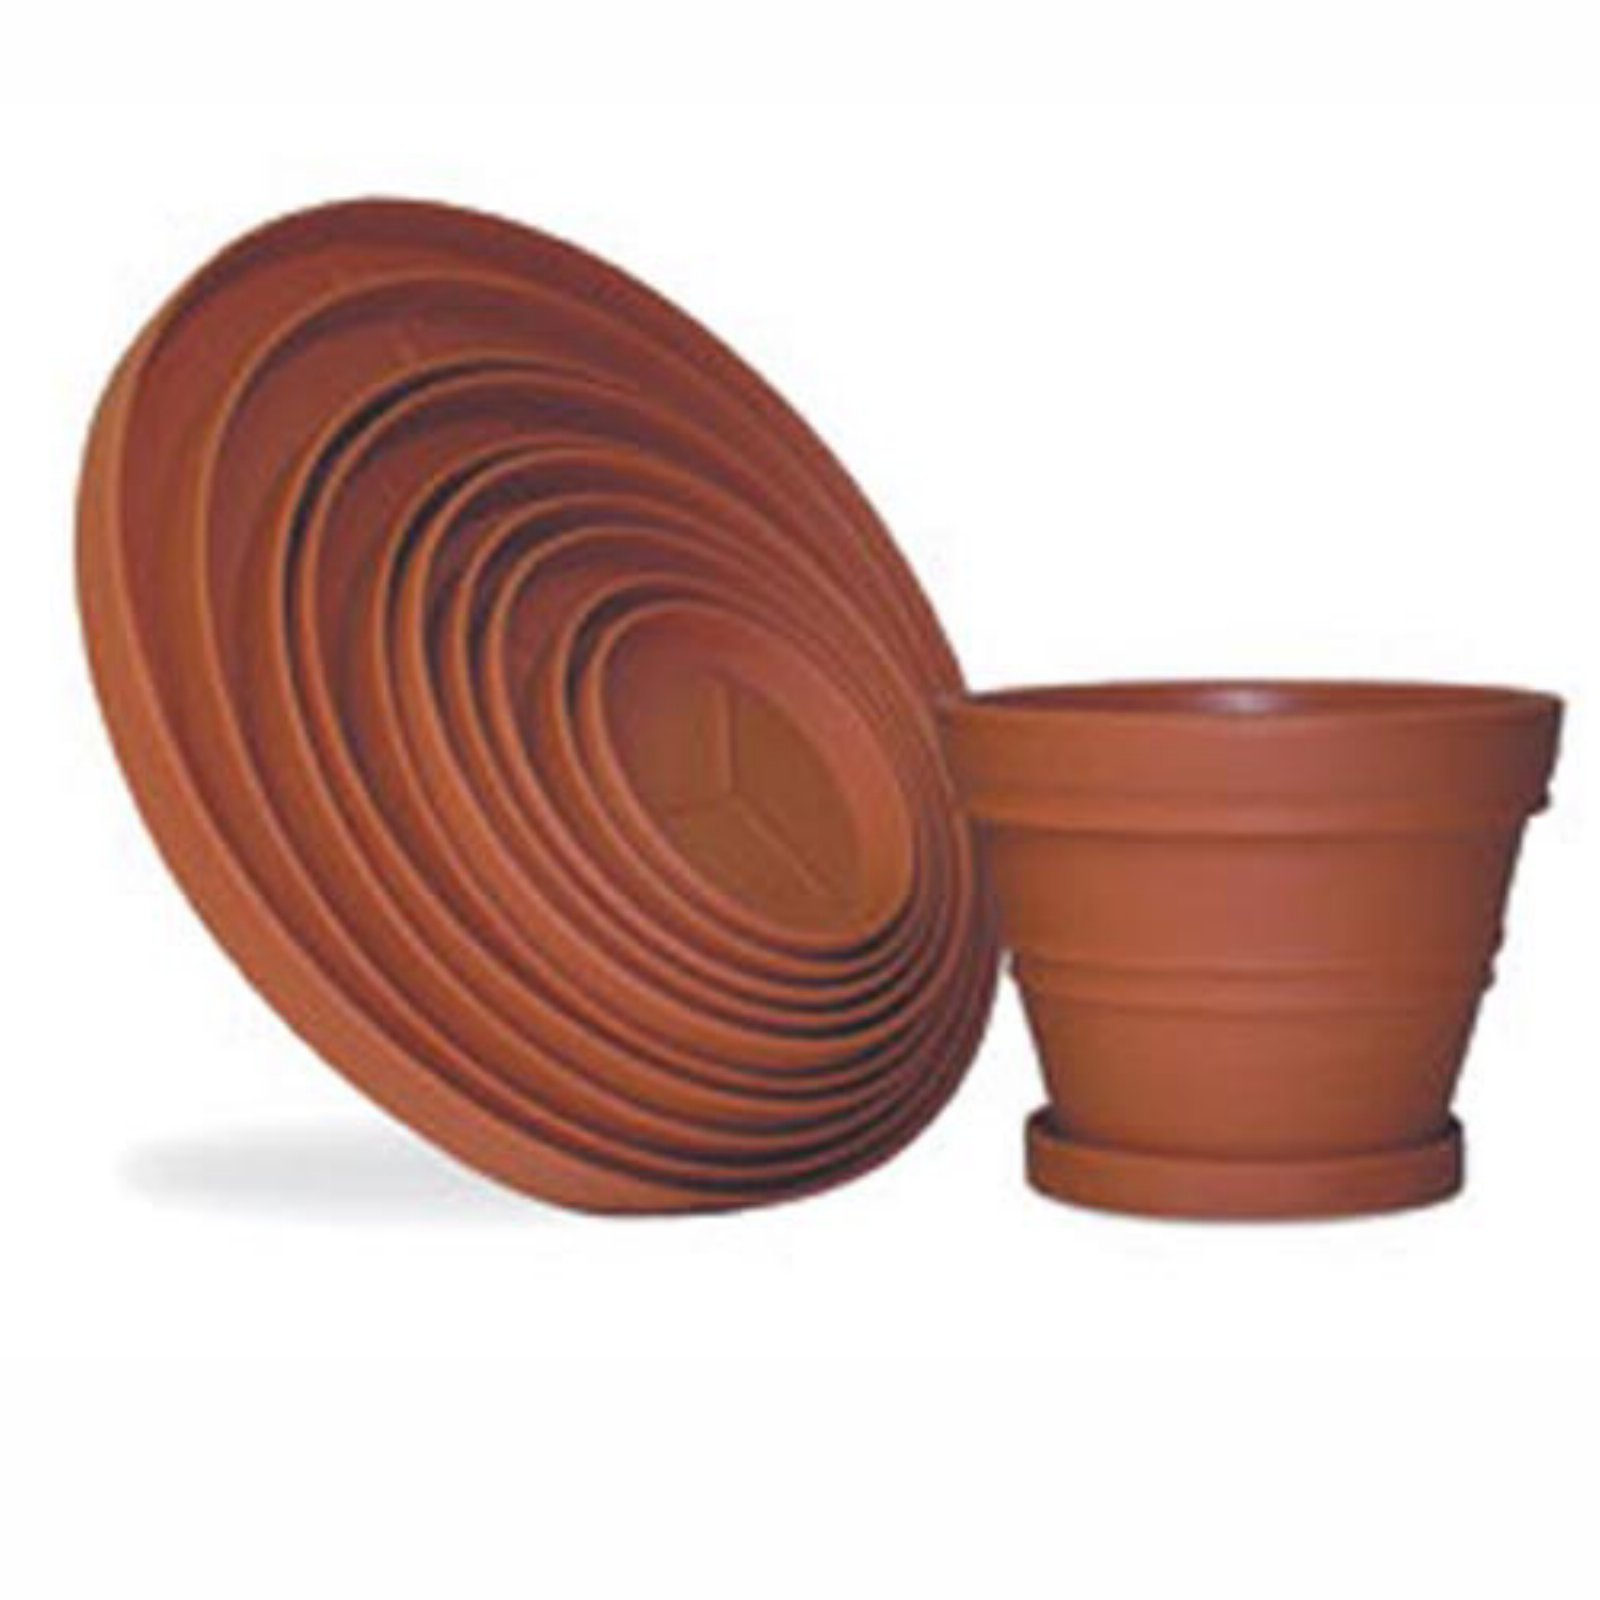 Round Resin Planter Saucers by Riverside Plastics Inc